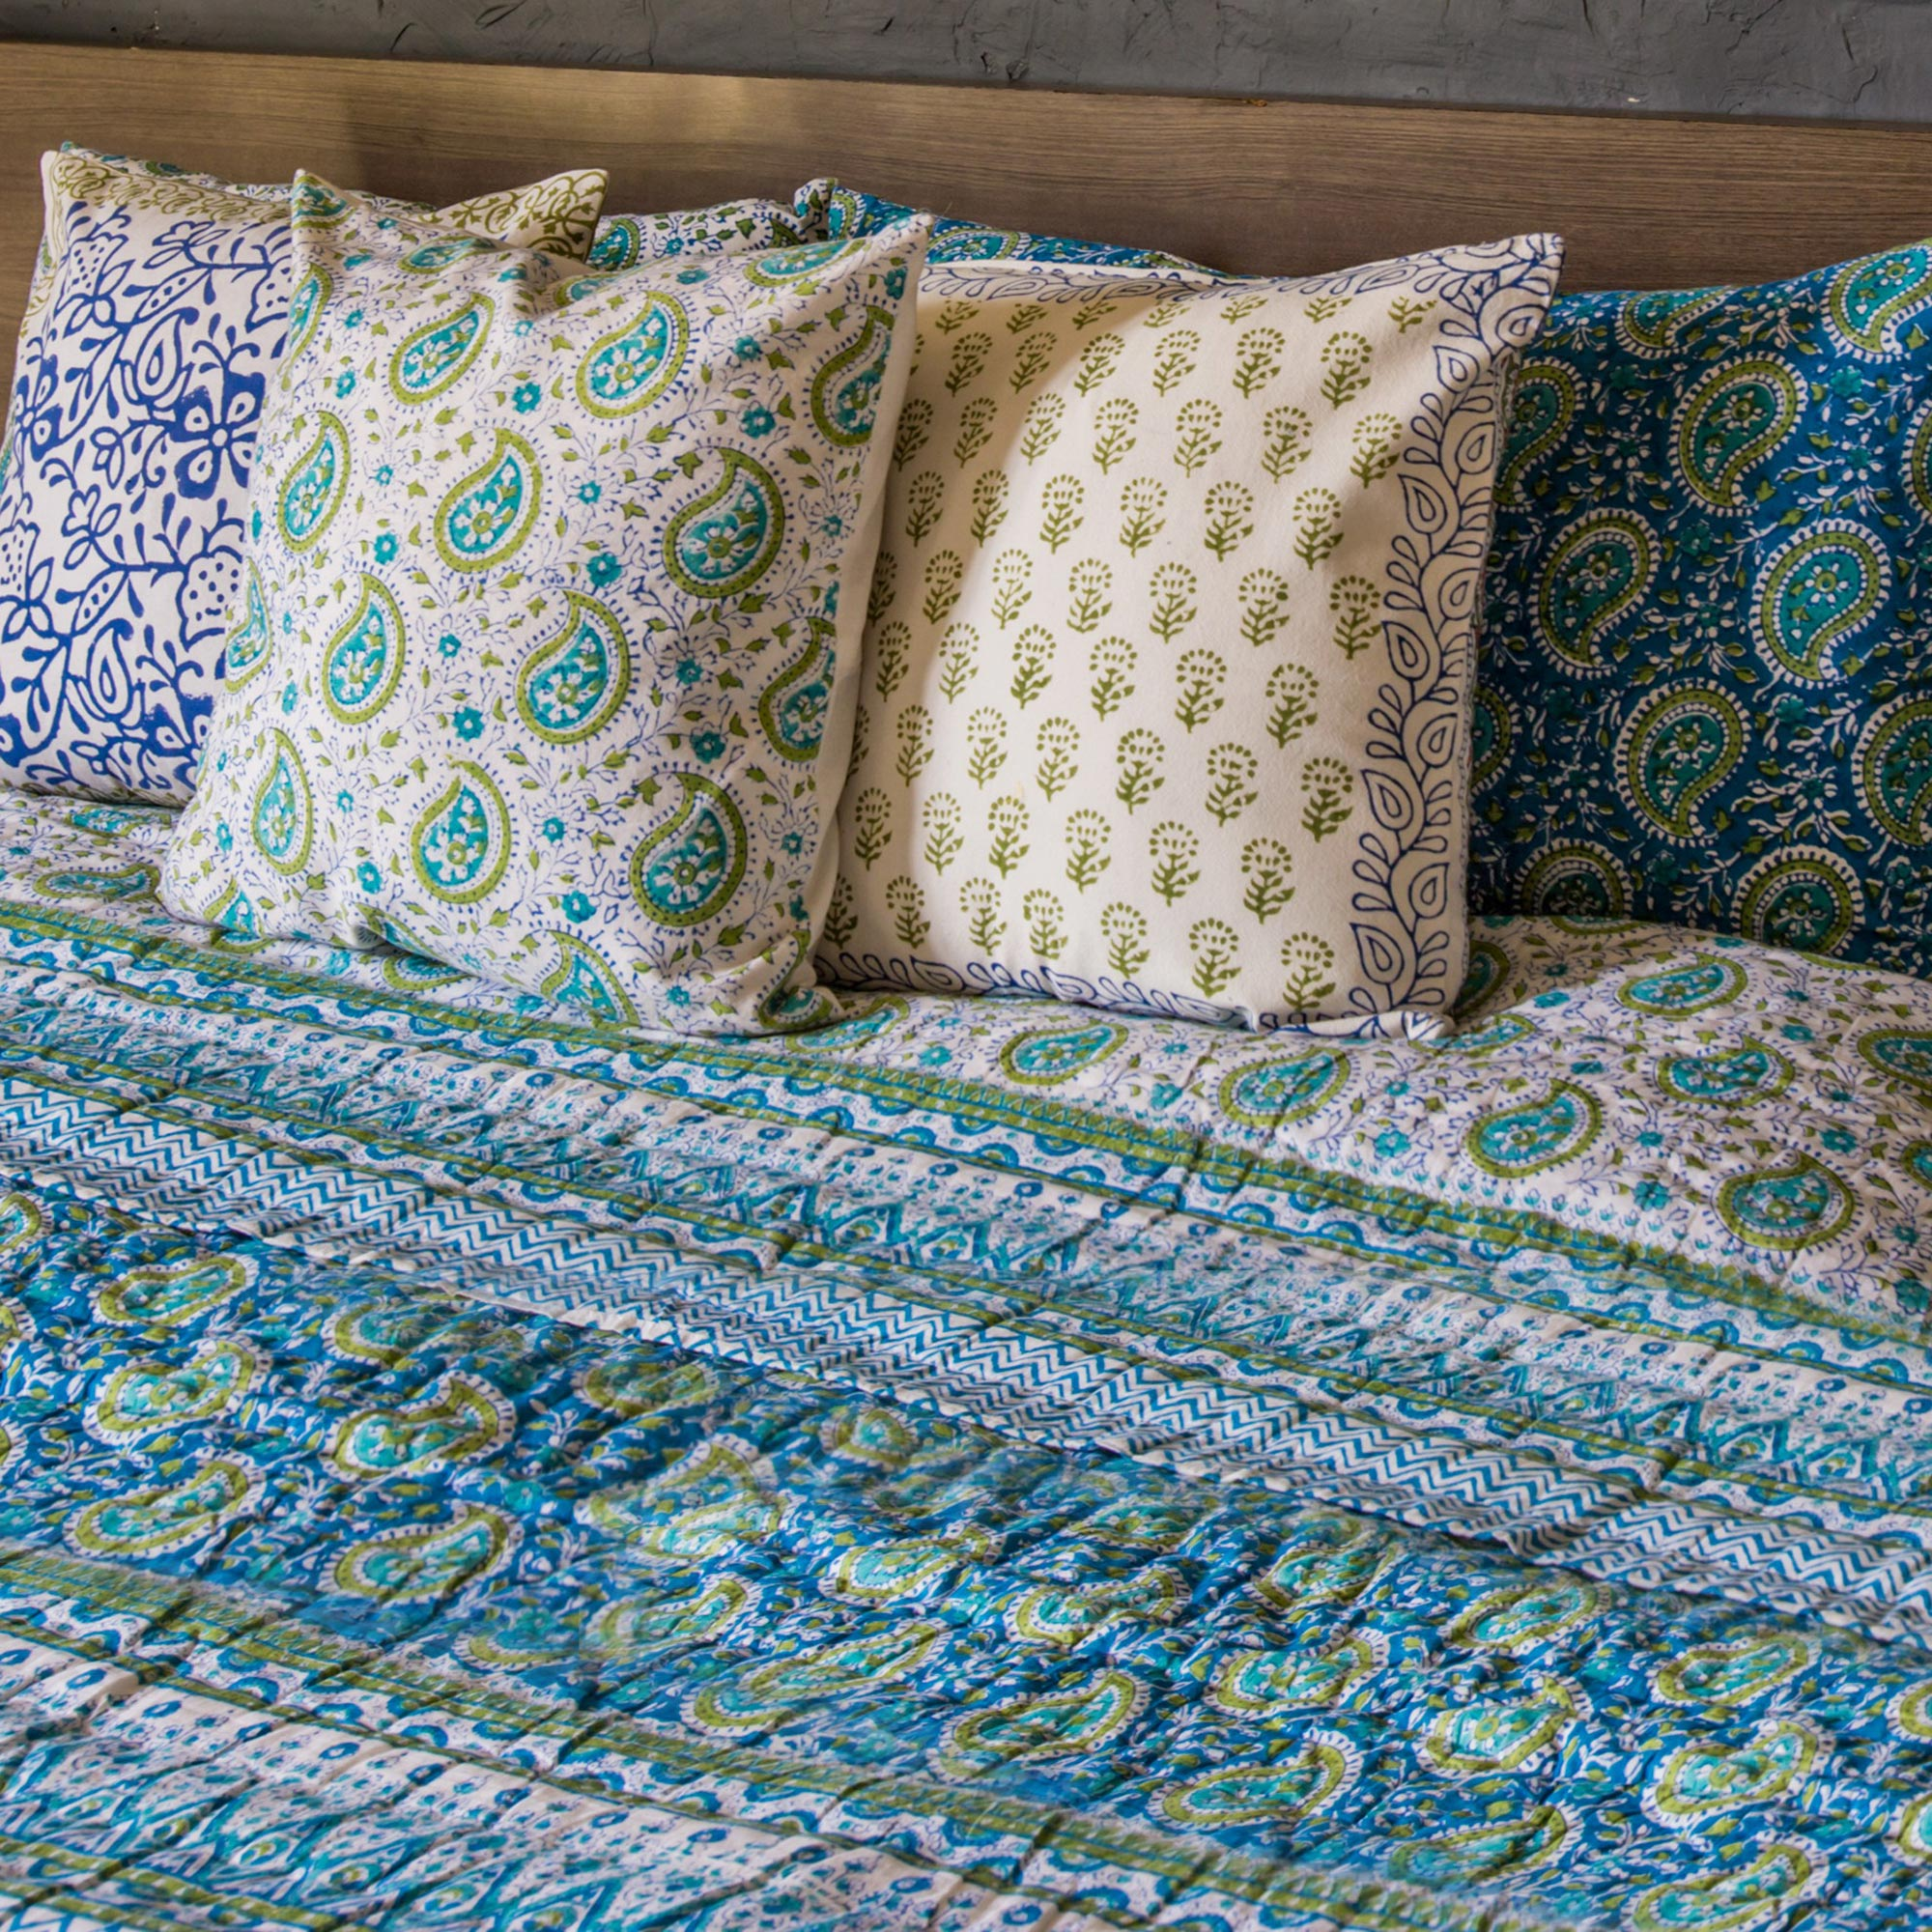 Block printed cotton quilt blanket and pillowcase set, 'Cerulean Paisleys' king -size cushion covers throws